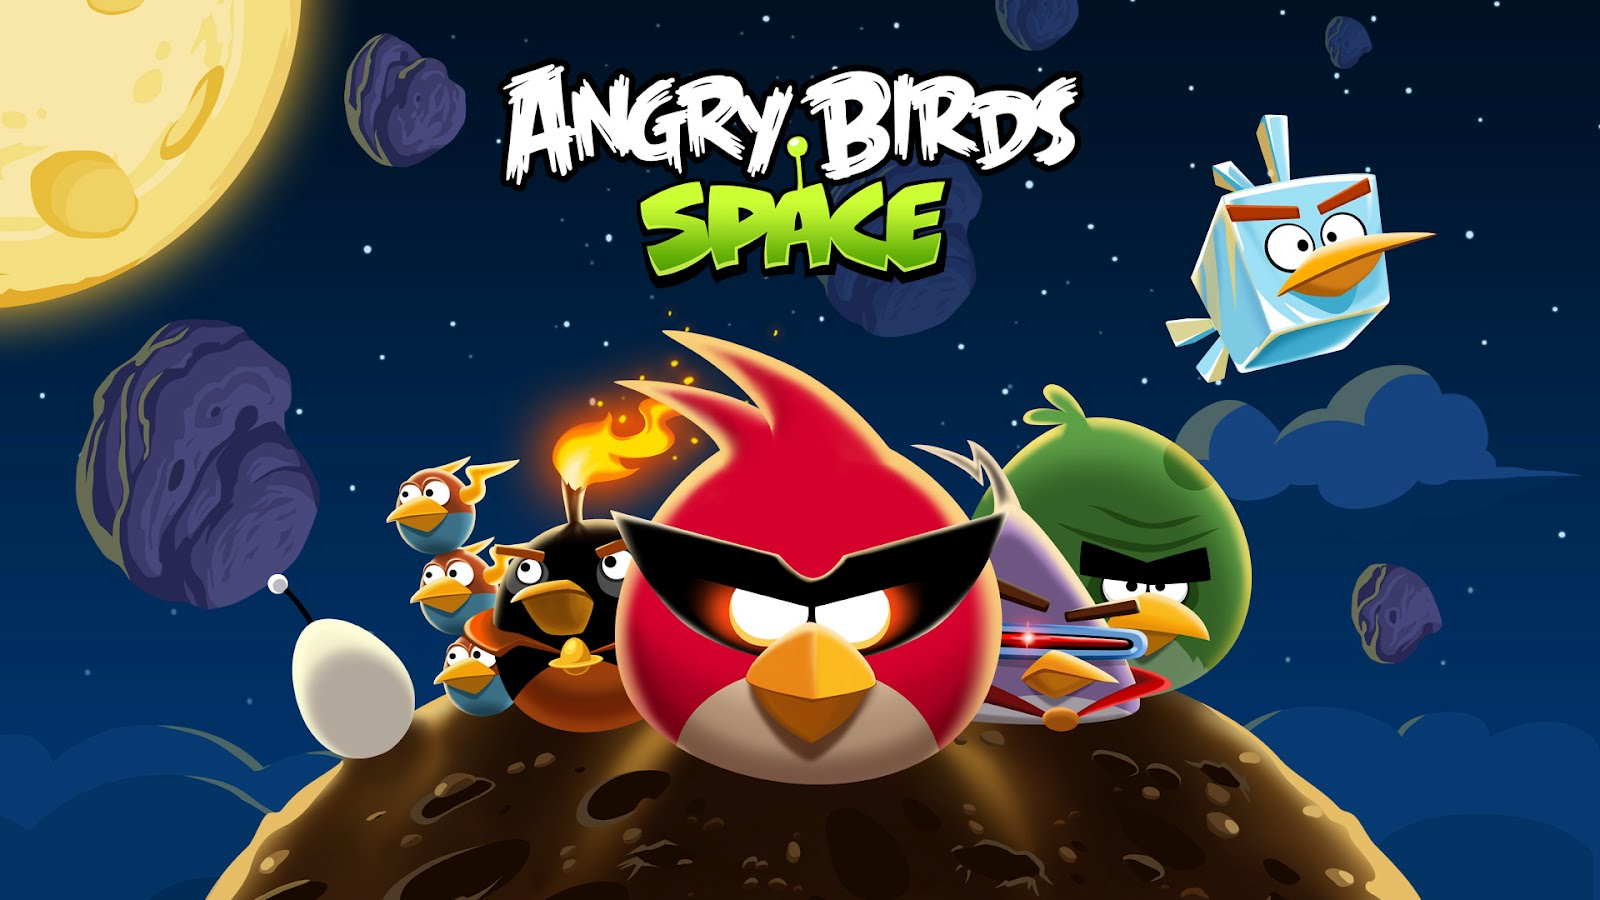 Image angry birds space angry birds wiki - Angry birds space gratuit ...